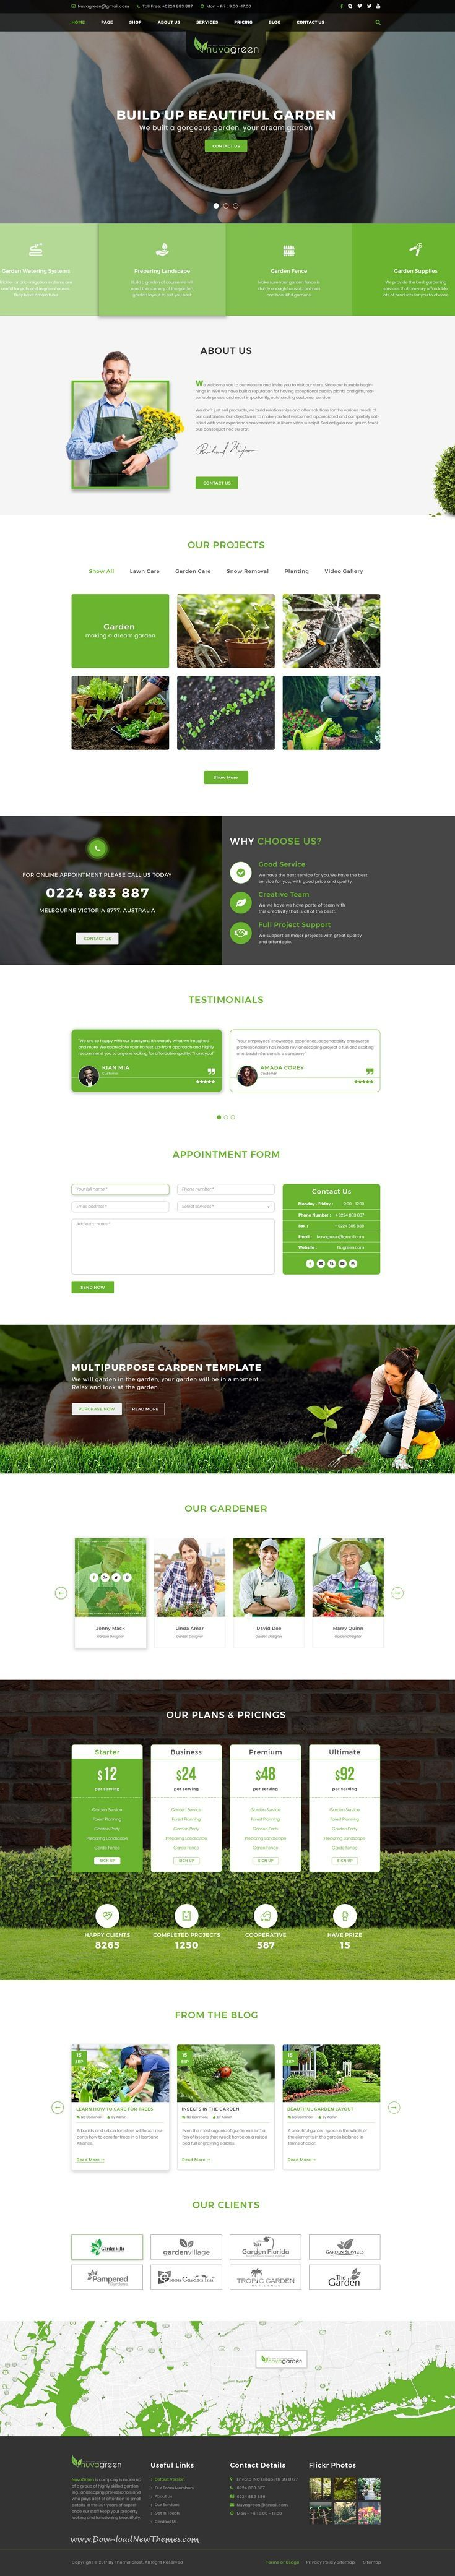 Inspirational Lawn Care Business Names